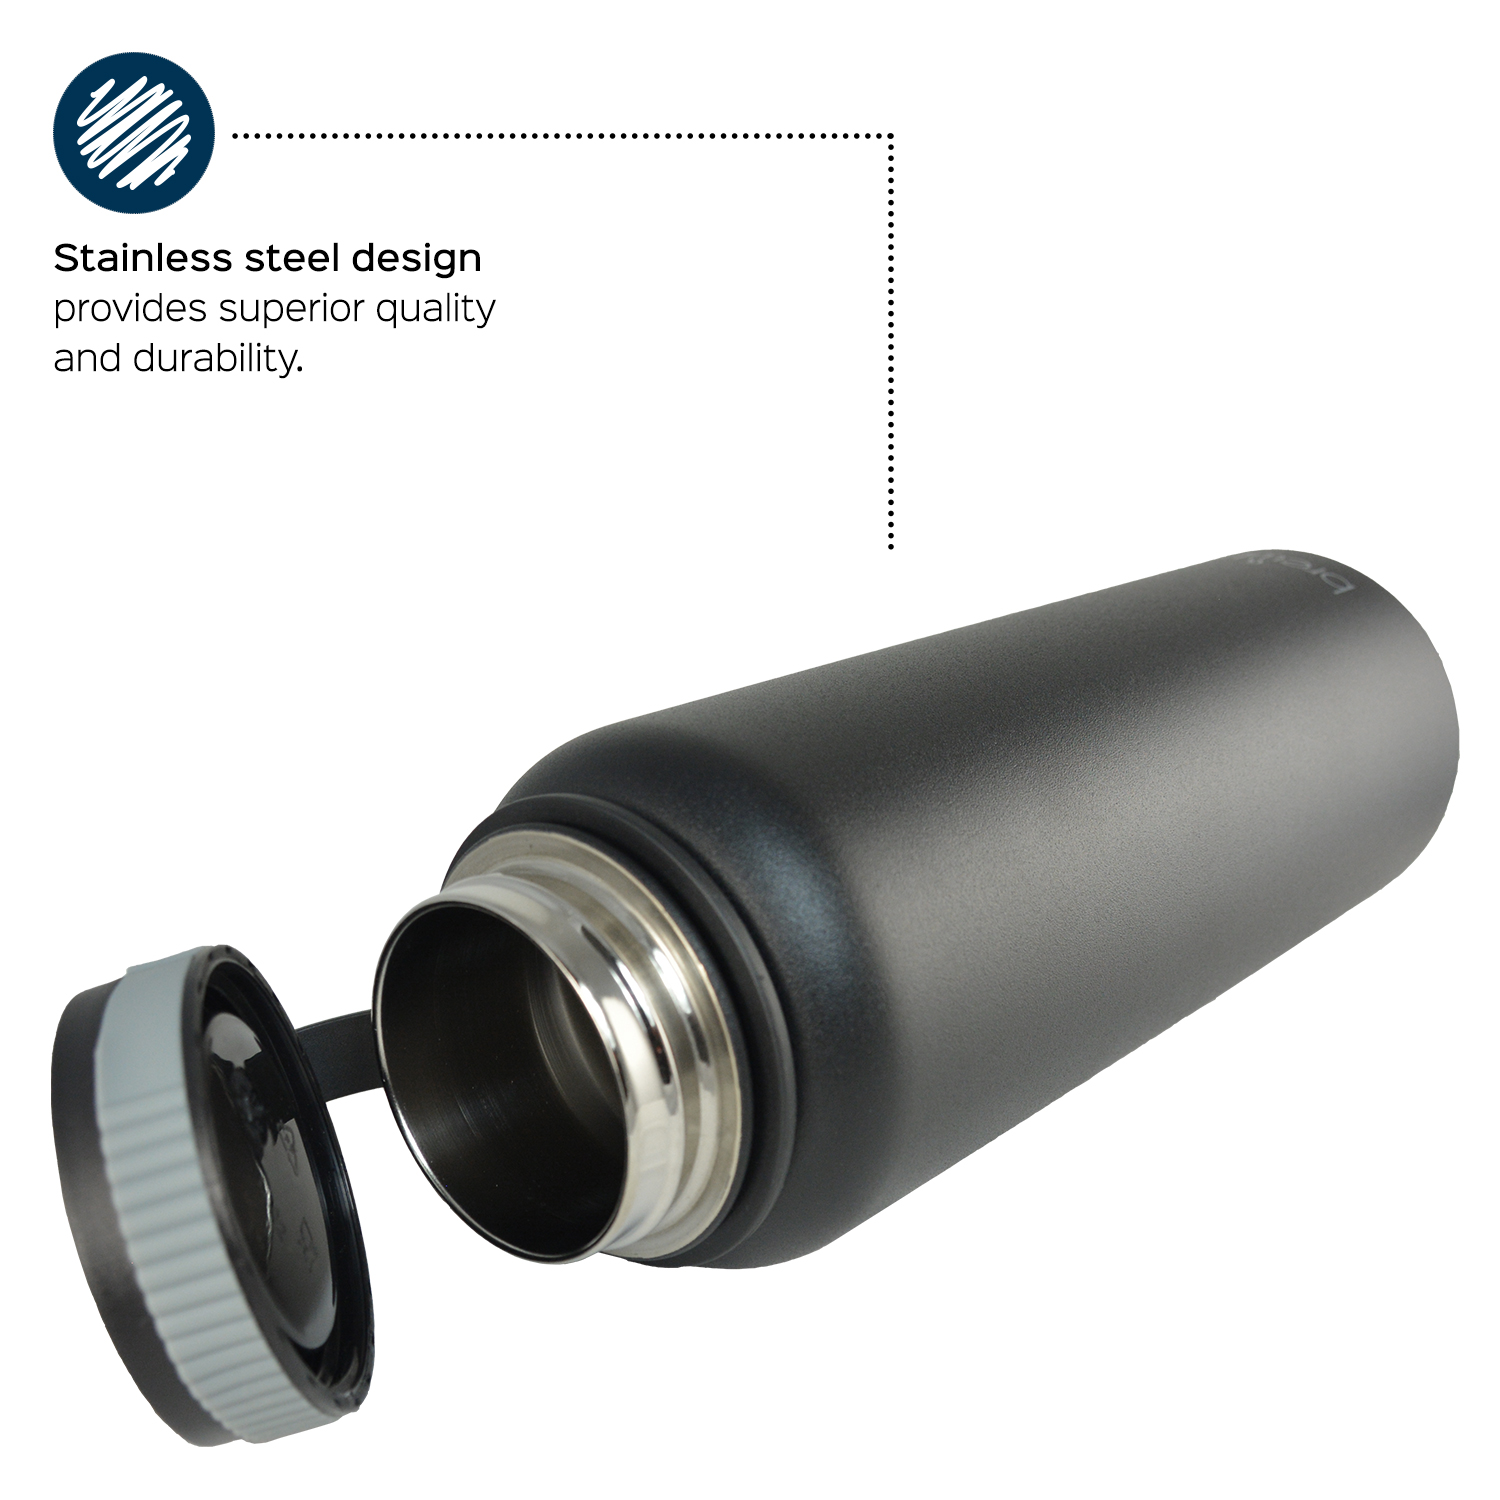 Stainless Steel Insulation : Brewberry insulated stainless steel sports water bottle